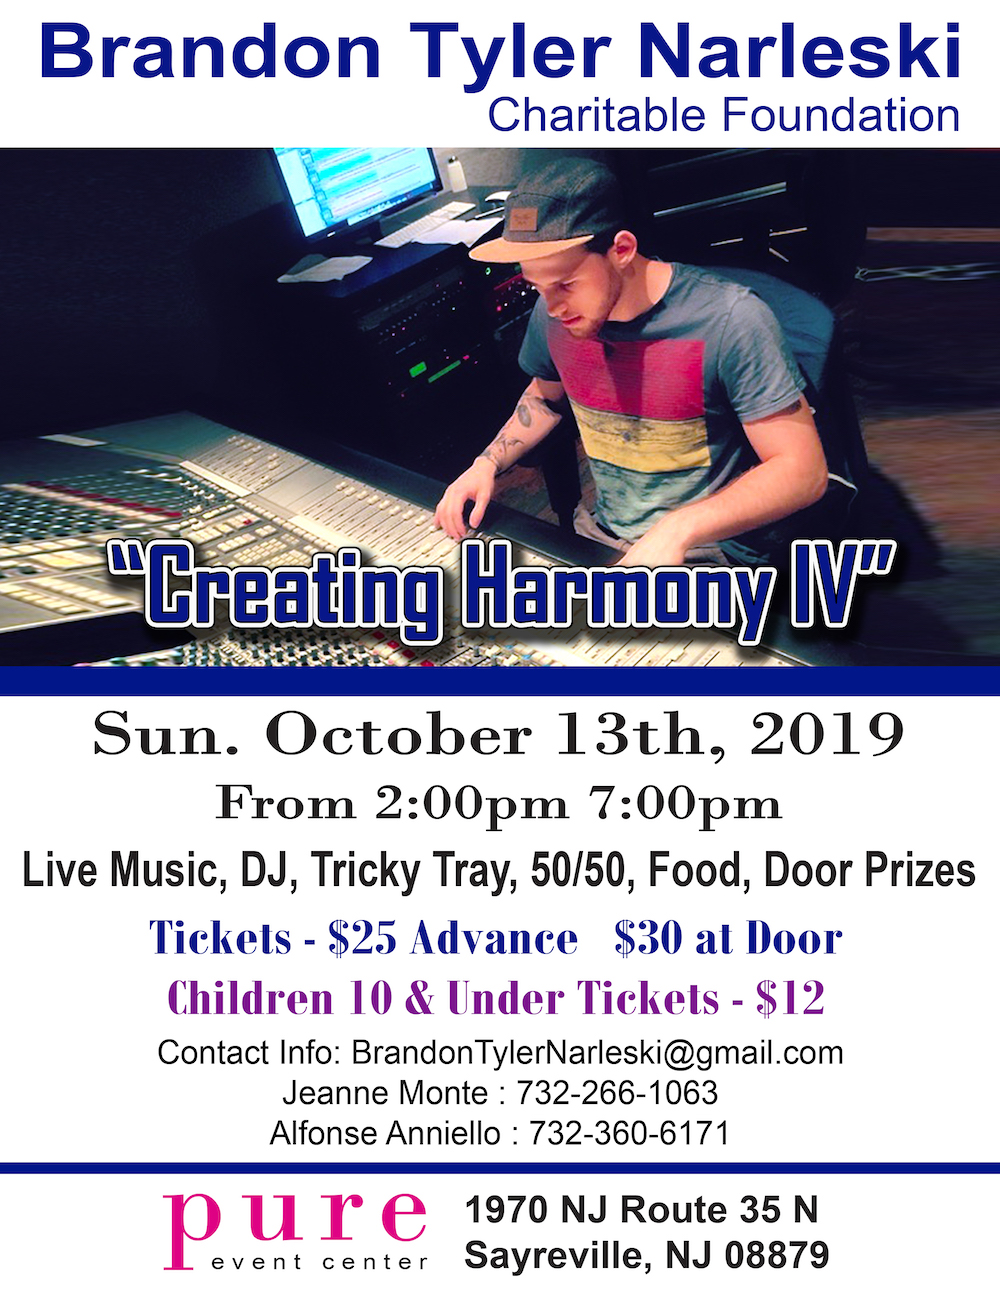 Creating Harmony , Fundraiser , nonprofit , 501c3, The Brandon Tyler Narleski Charitable Foundation